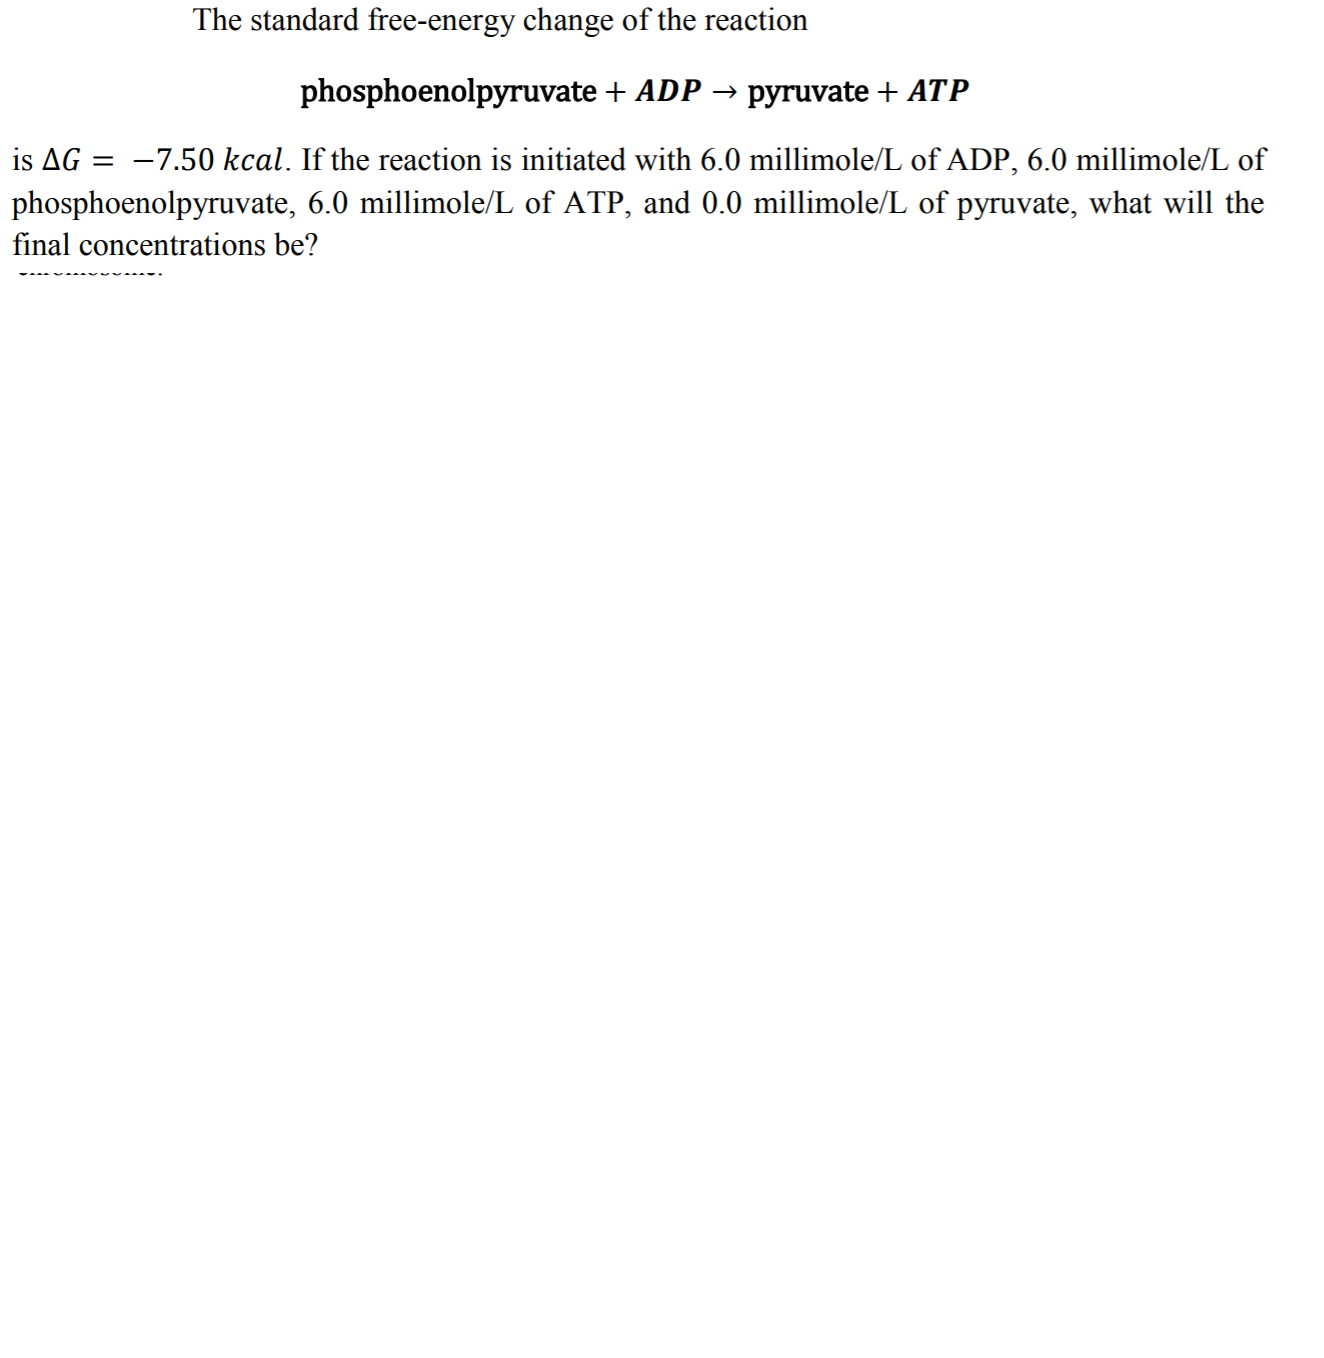 The standard free-energy change of the reaction phosphoenolpyruvate ADP- pyruvate + ATP is ΔG =-7.50 kcal. If the reaction is initiated with 6.0 millimole/L of ADP, 6.0 millimole/L of phosphoenolpyruvate, 6.0 millimole/L of ATP, and 0.0 millimole/L of pyruvate, what will the final concentrations be?